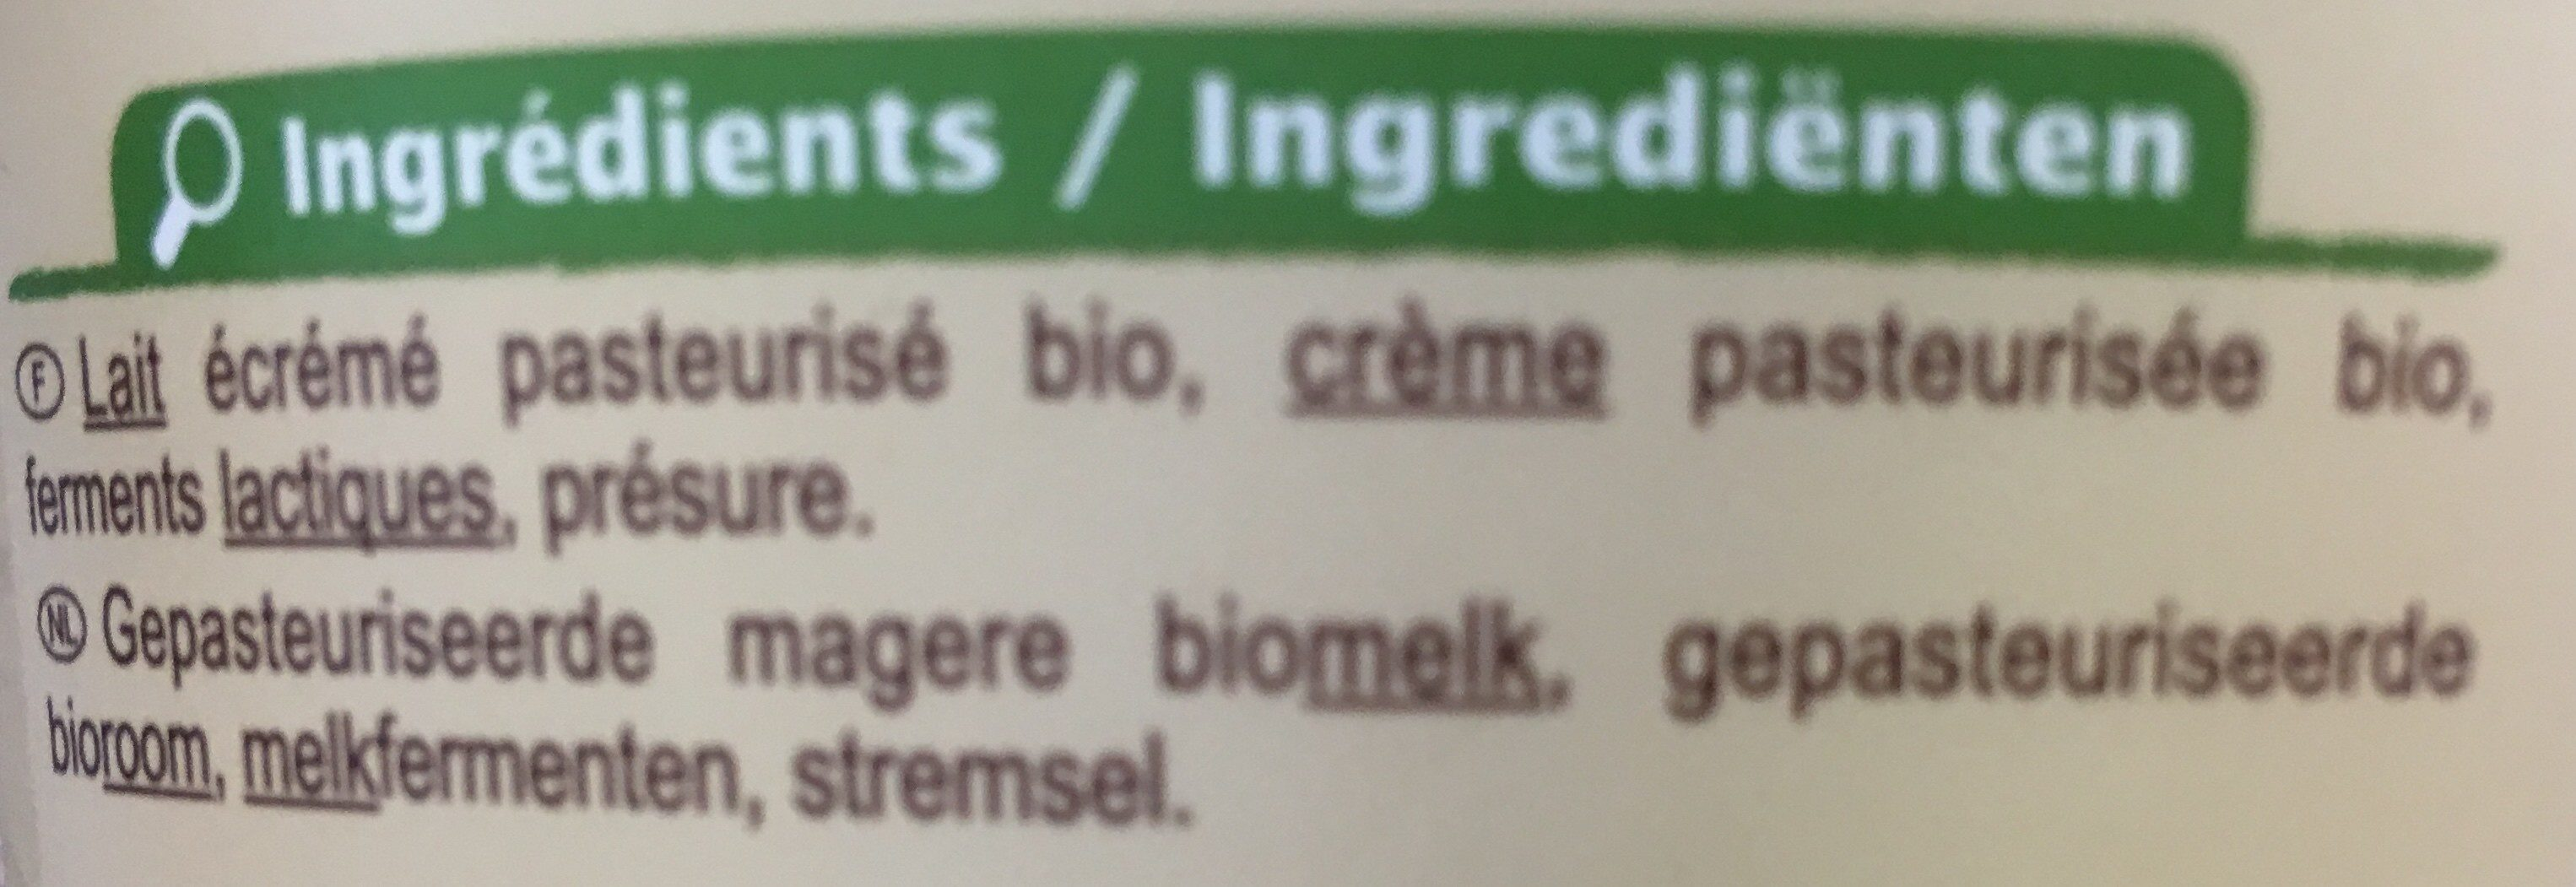 Fromage frais - Ingredients - fr